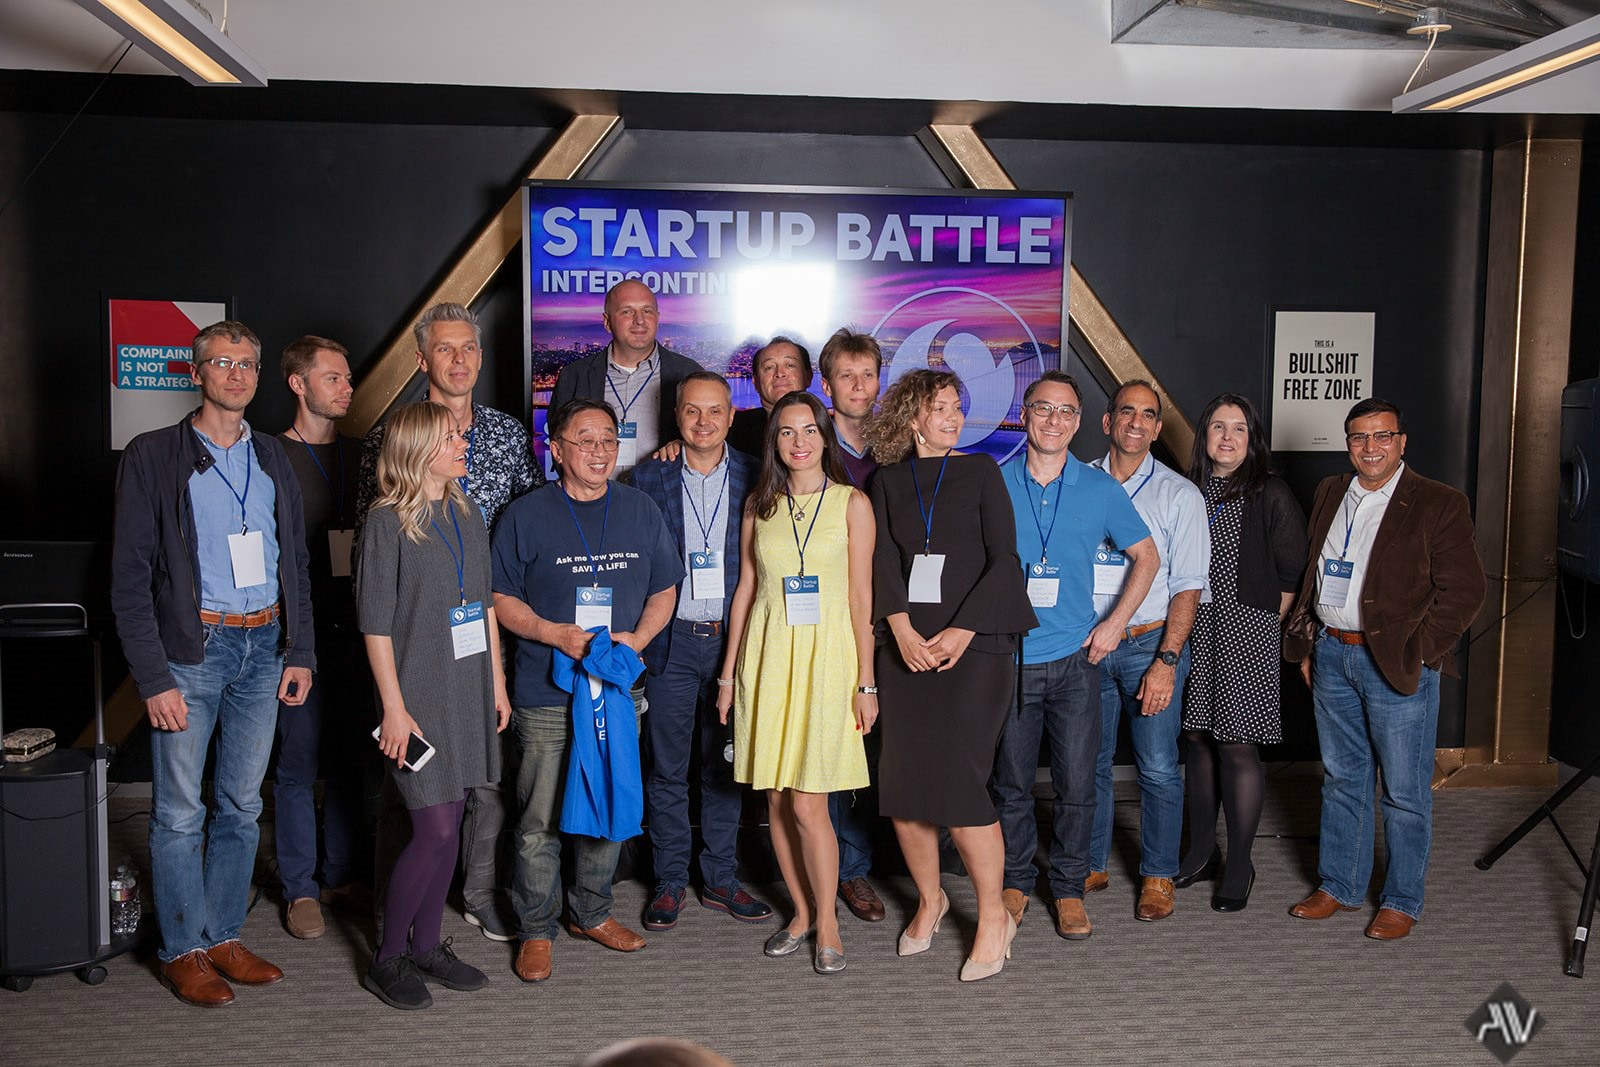 At the Intercontinental Startup Battle in San Francisco, Judges have Determined the Most Promising Startups